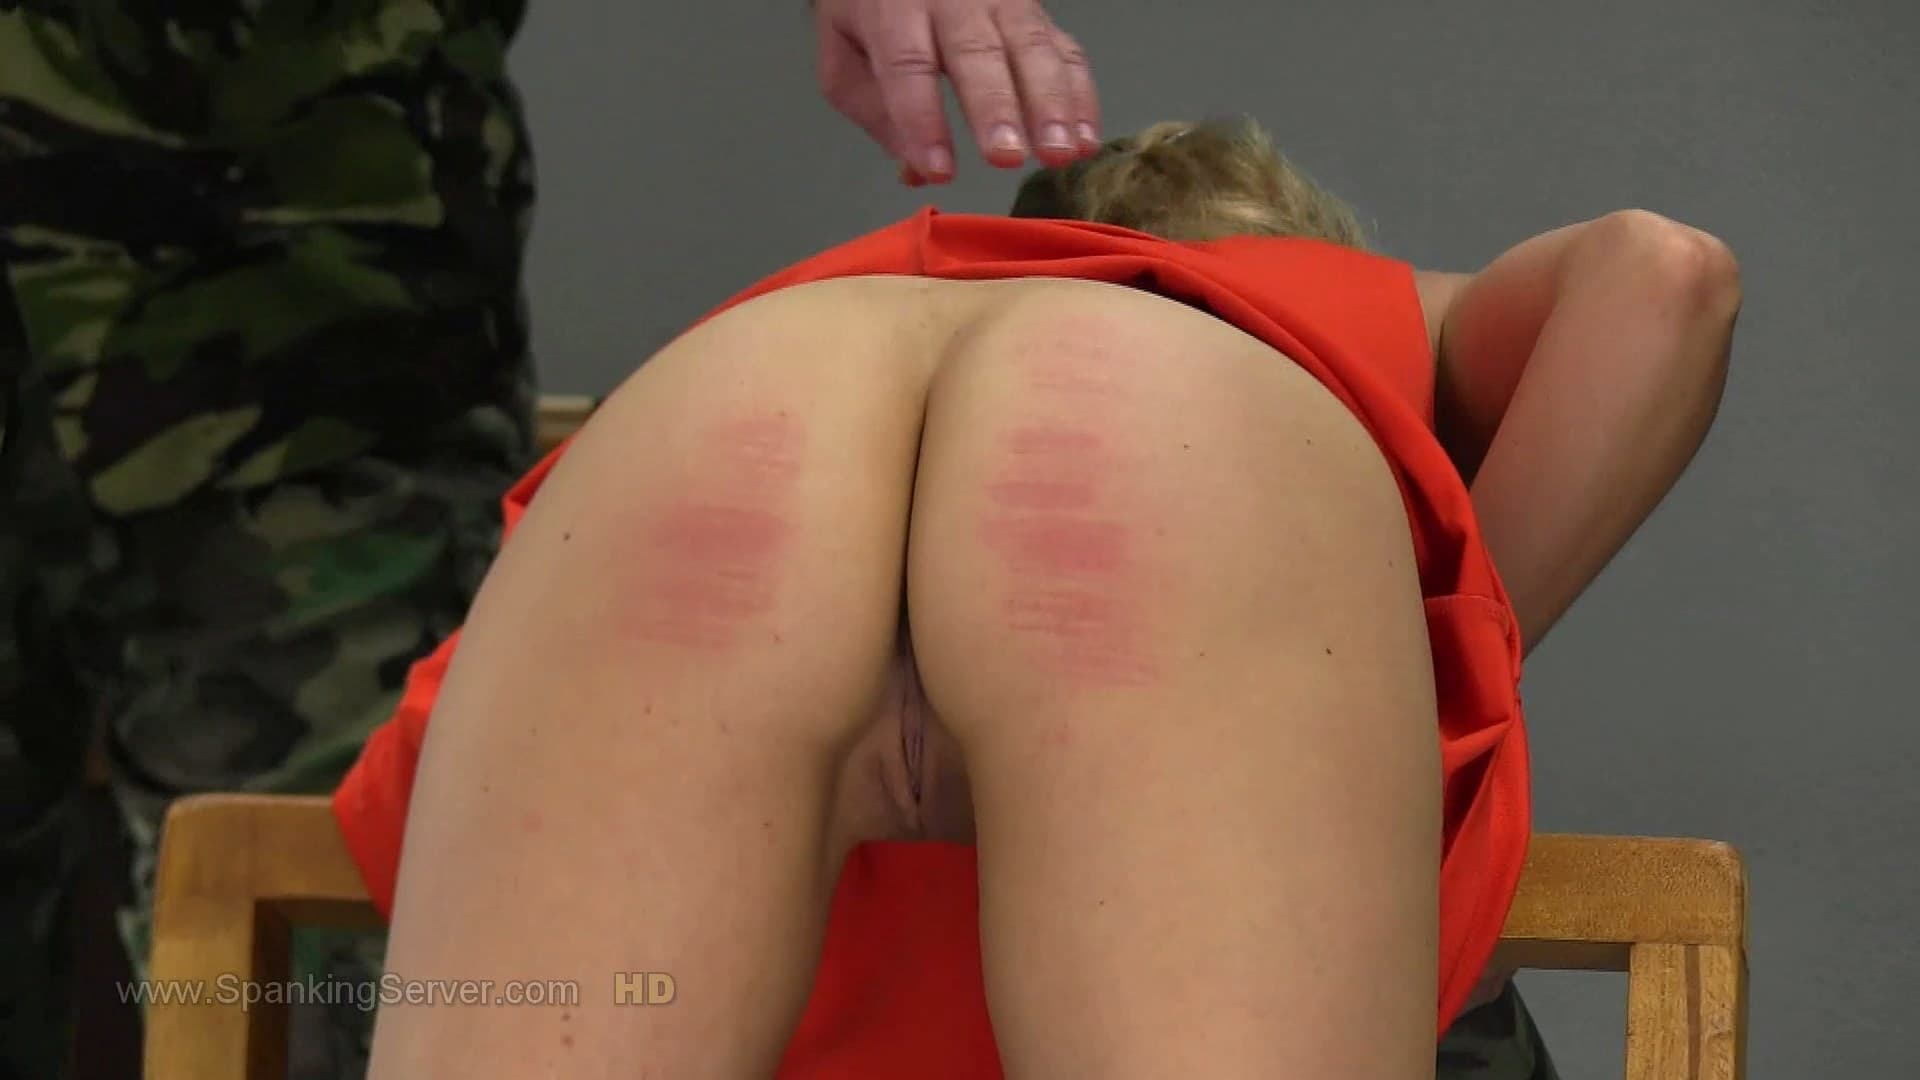 Spanking Server – MP4/Full HD – Vicky – 2021 – 02 Week